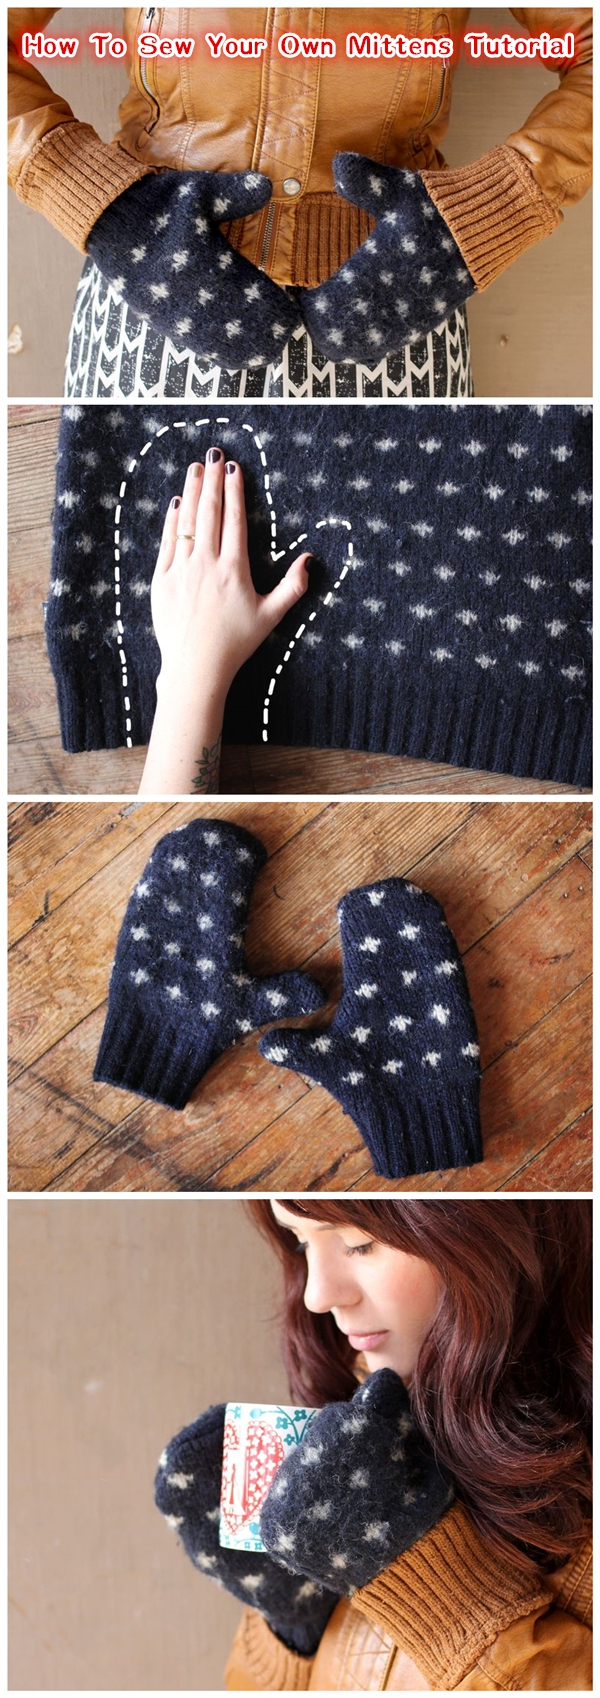 How To Sew Your Own Mittens Tutorial